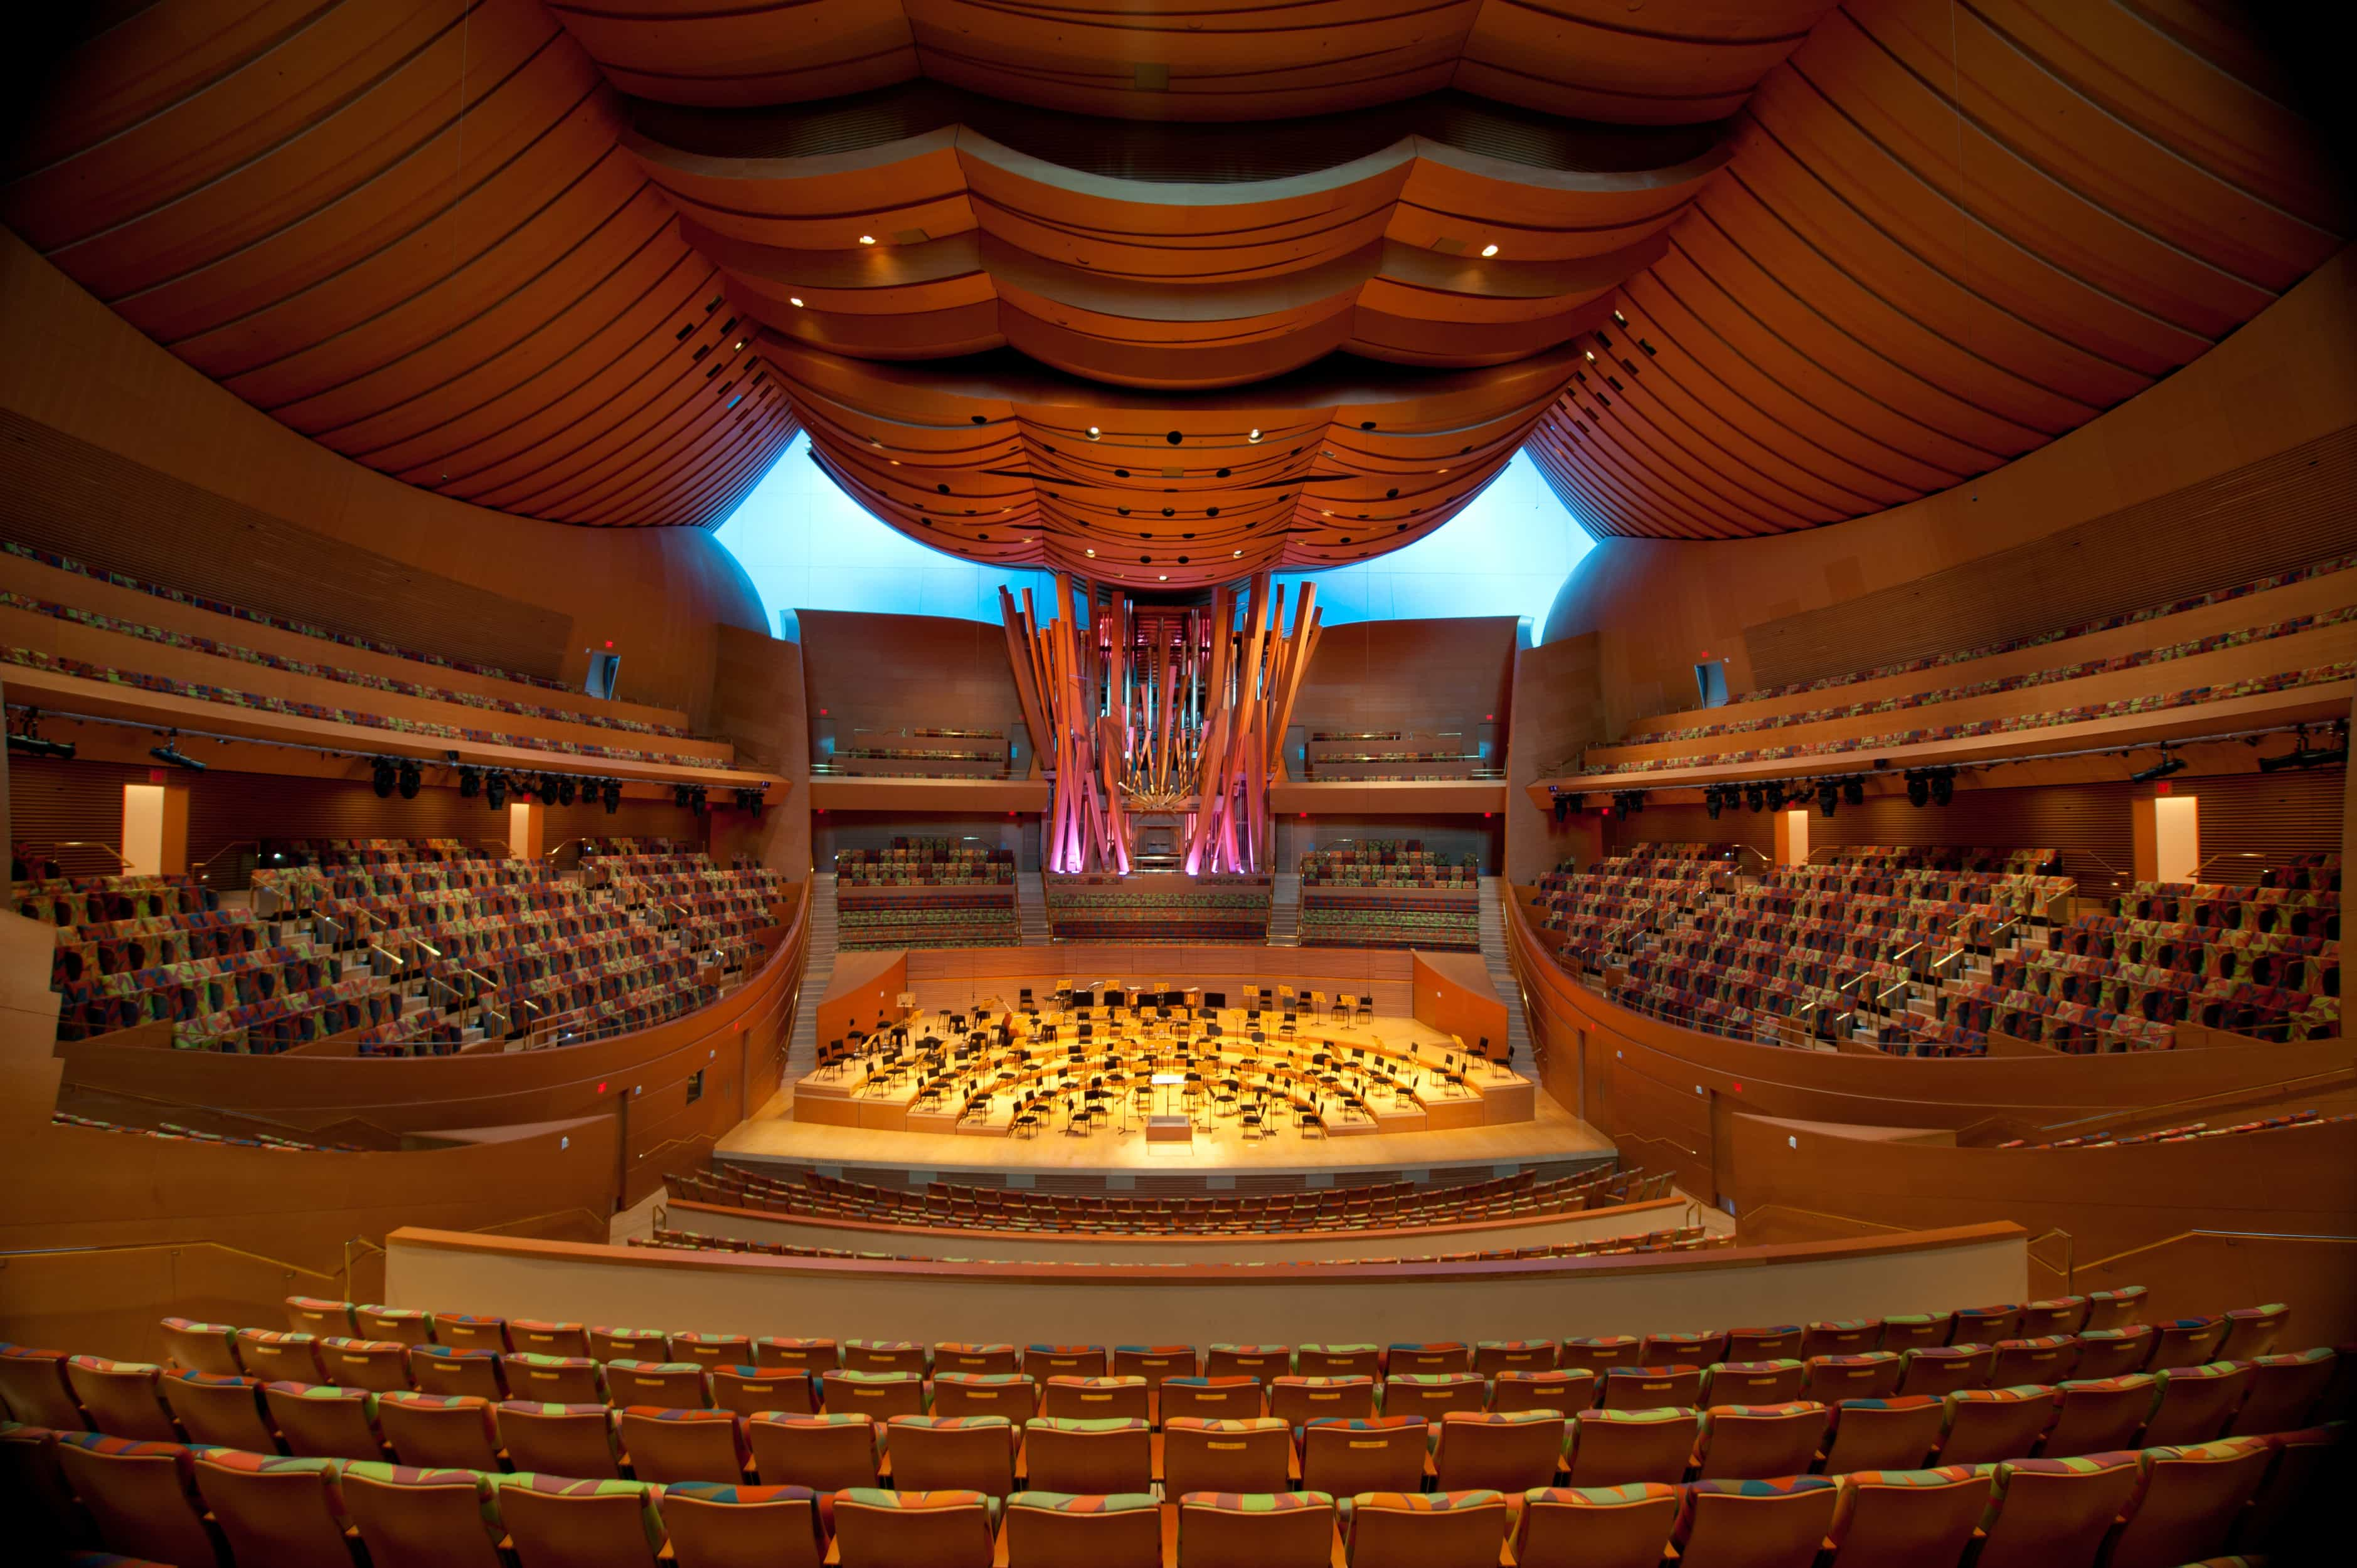 (c) The Los Angeles Philharmonic Association